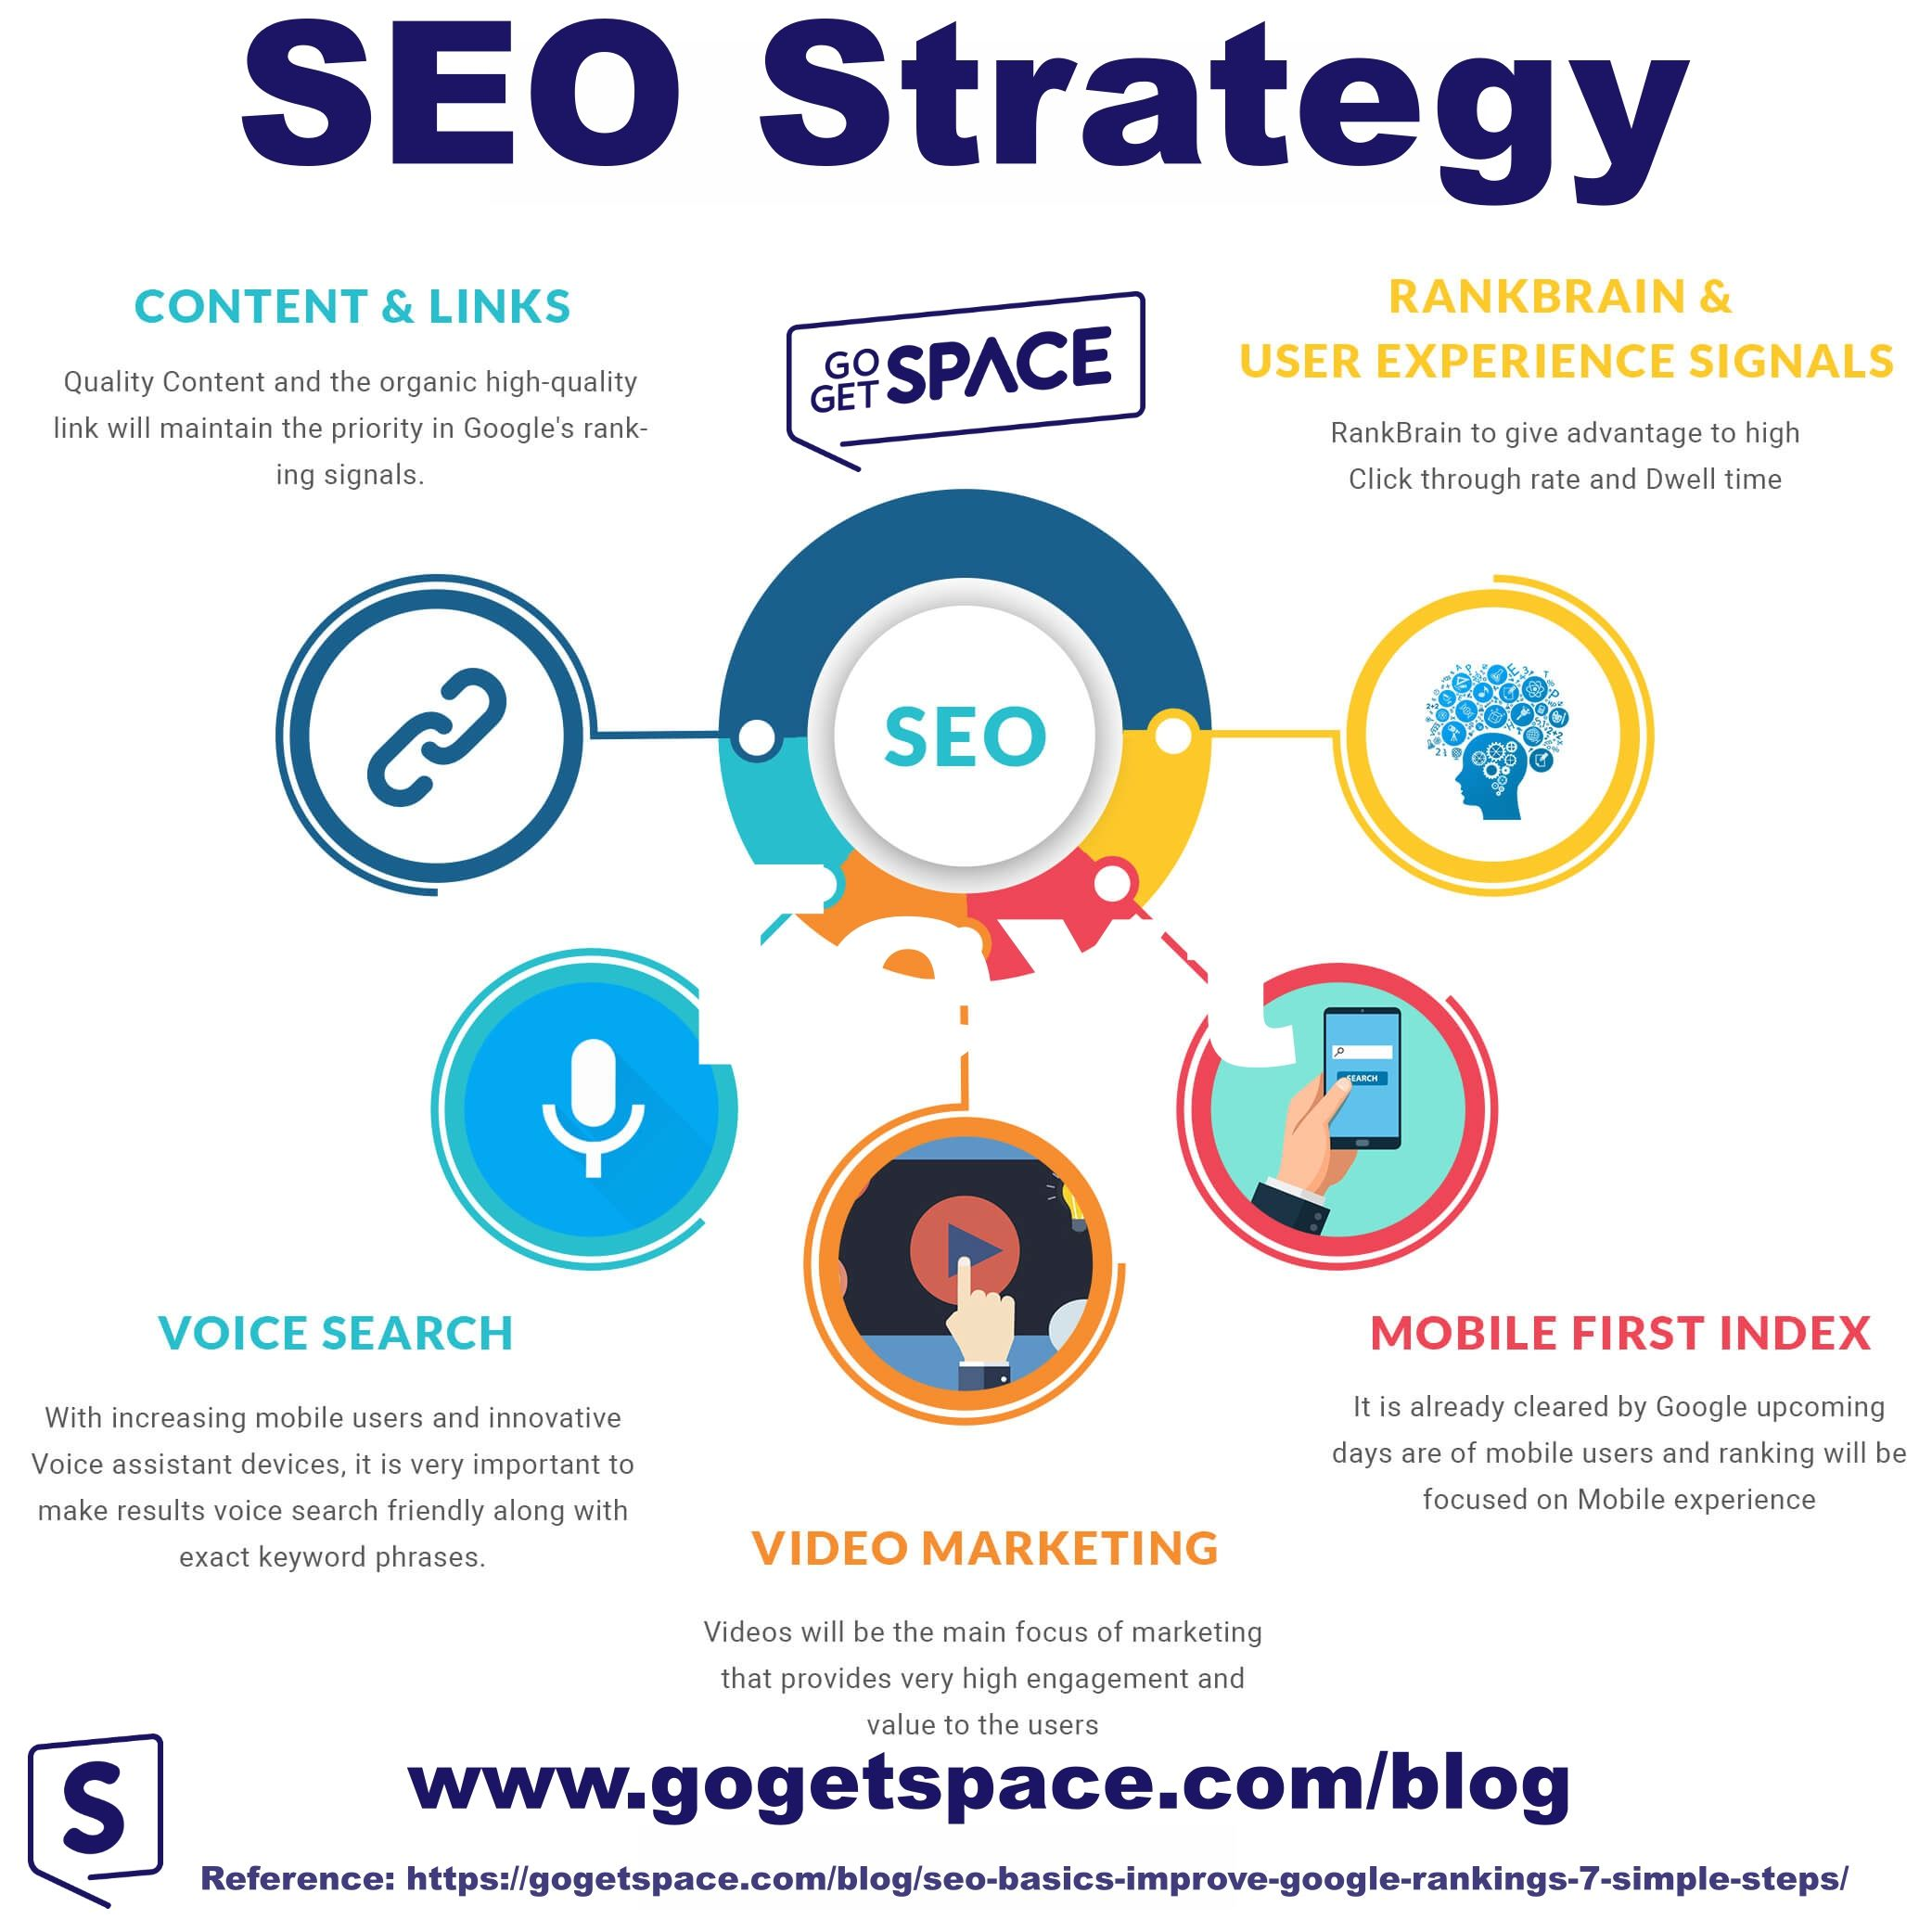 Seo Basics How To Improve Your Google Rankings In 7 Simple Steps Digital Marketing Digital Marketing Services Seo Services